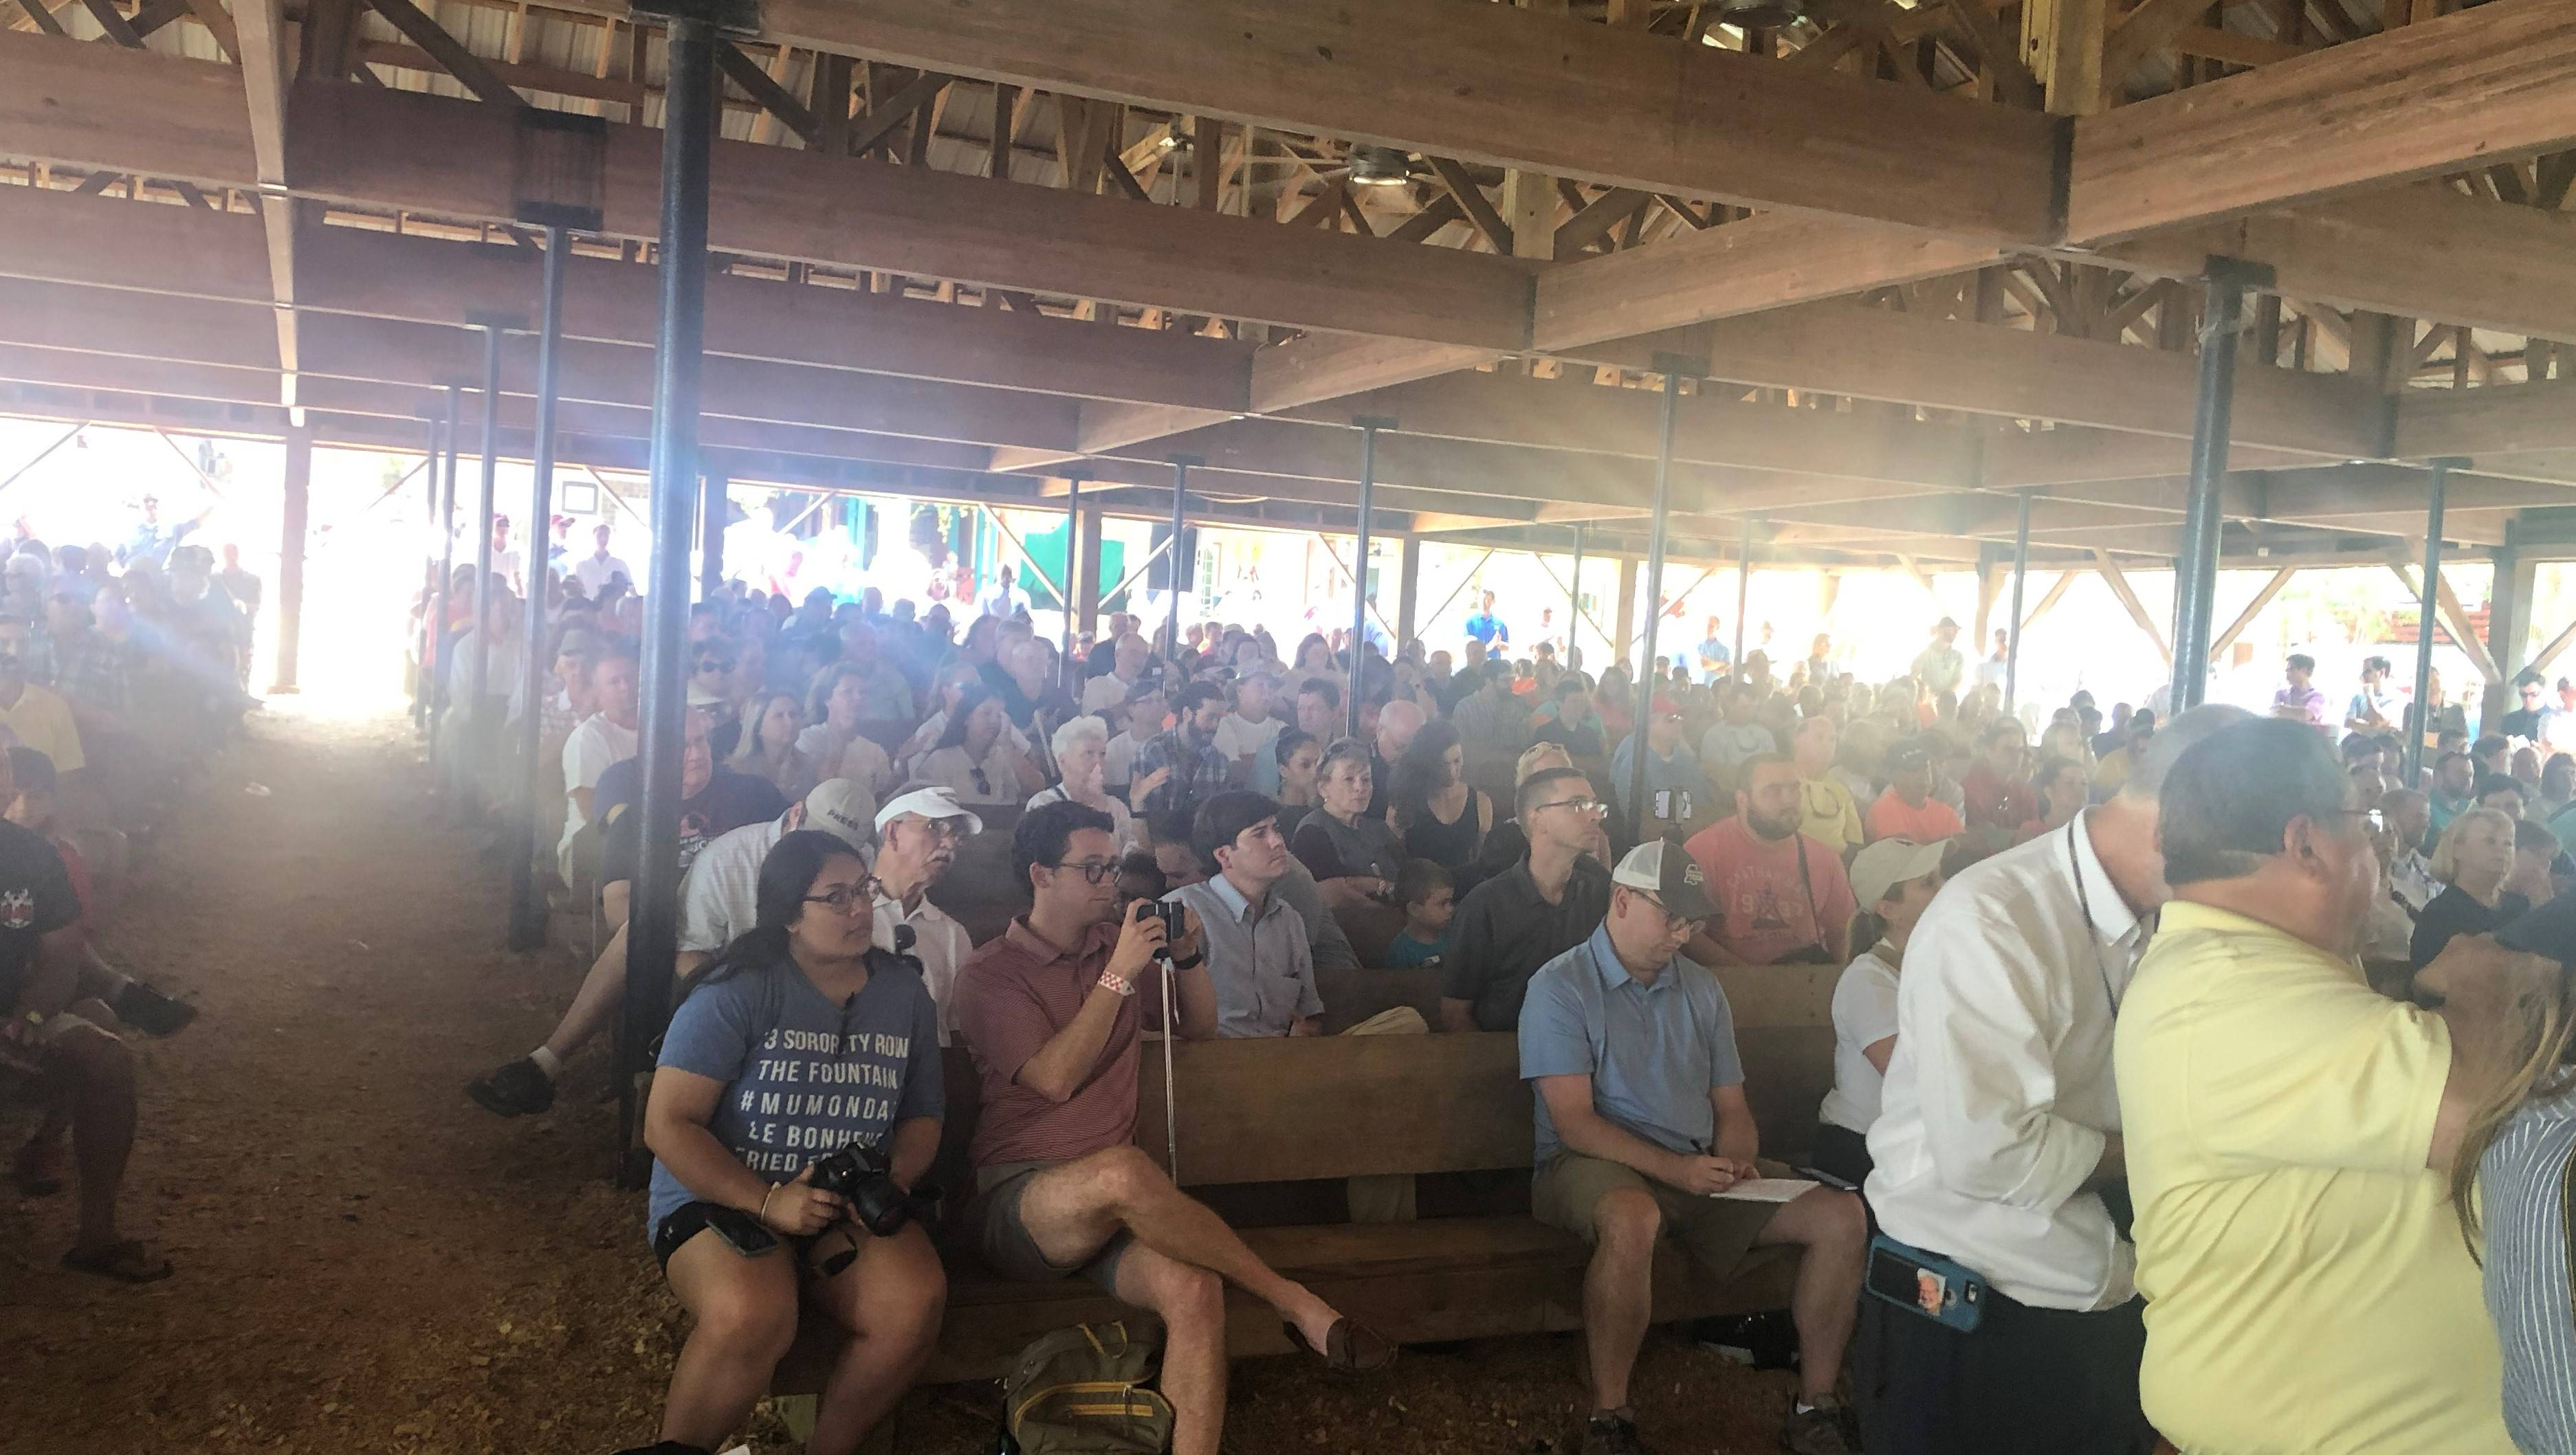 Wicker goes for a third term at Neshoba fair, opponent Baria says it's time for something new